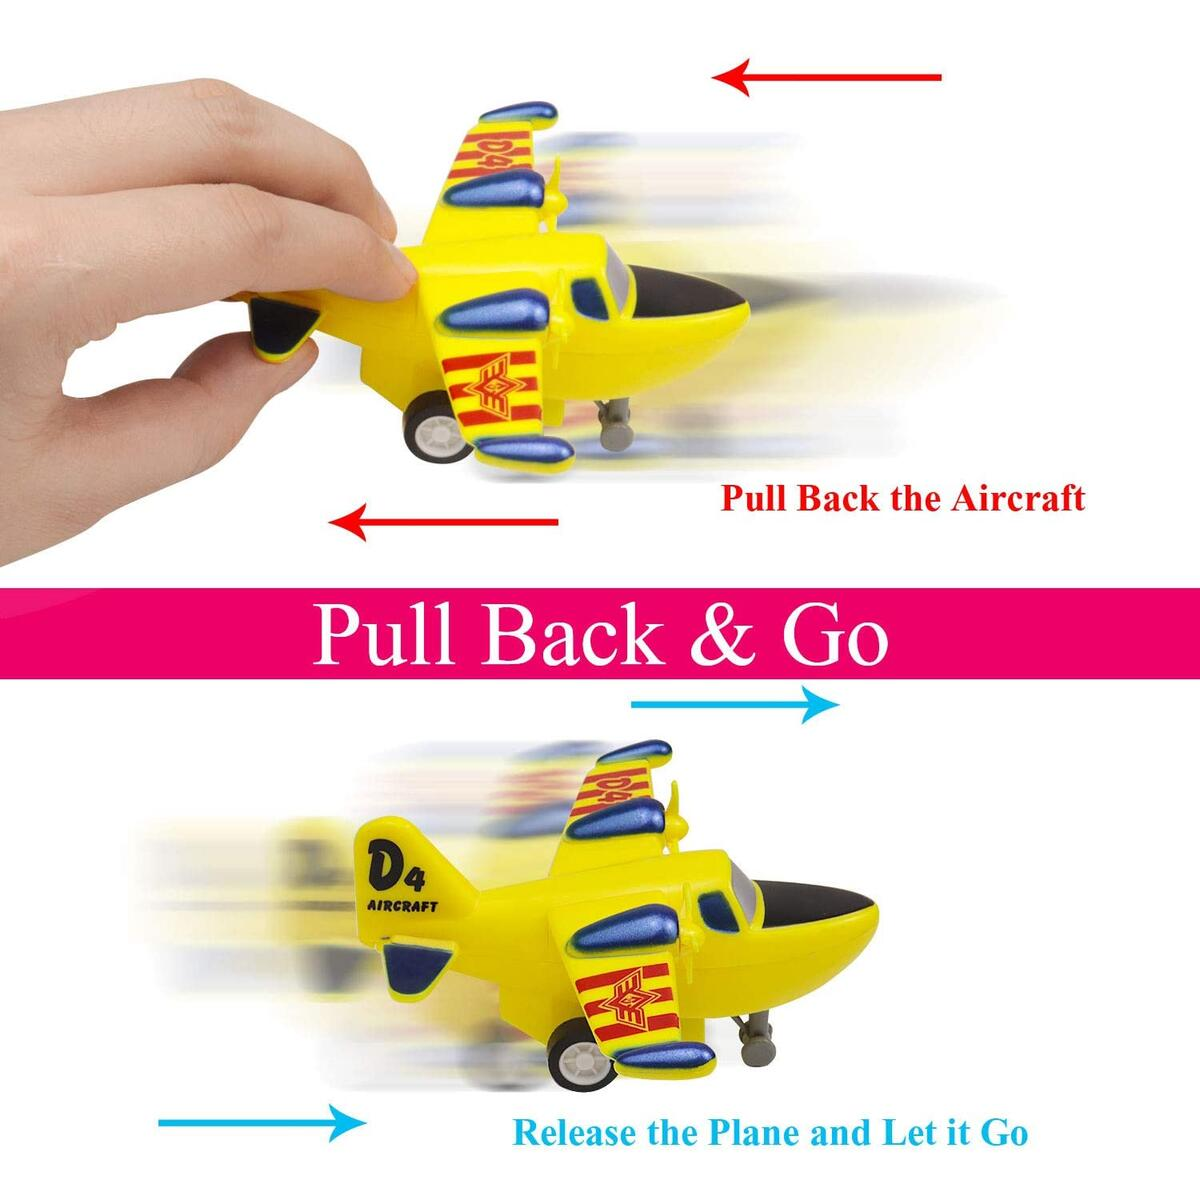 12 Pcs Pull Back Airplanes Playset, Plane Toys Variety Style , Helicopters, Stealth Bombers, Fighter Jets, Aircraft, Great as Gift for Children Boys Girls 2 3 4 5 6 7 8 years old, Party Favors